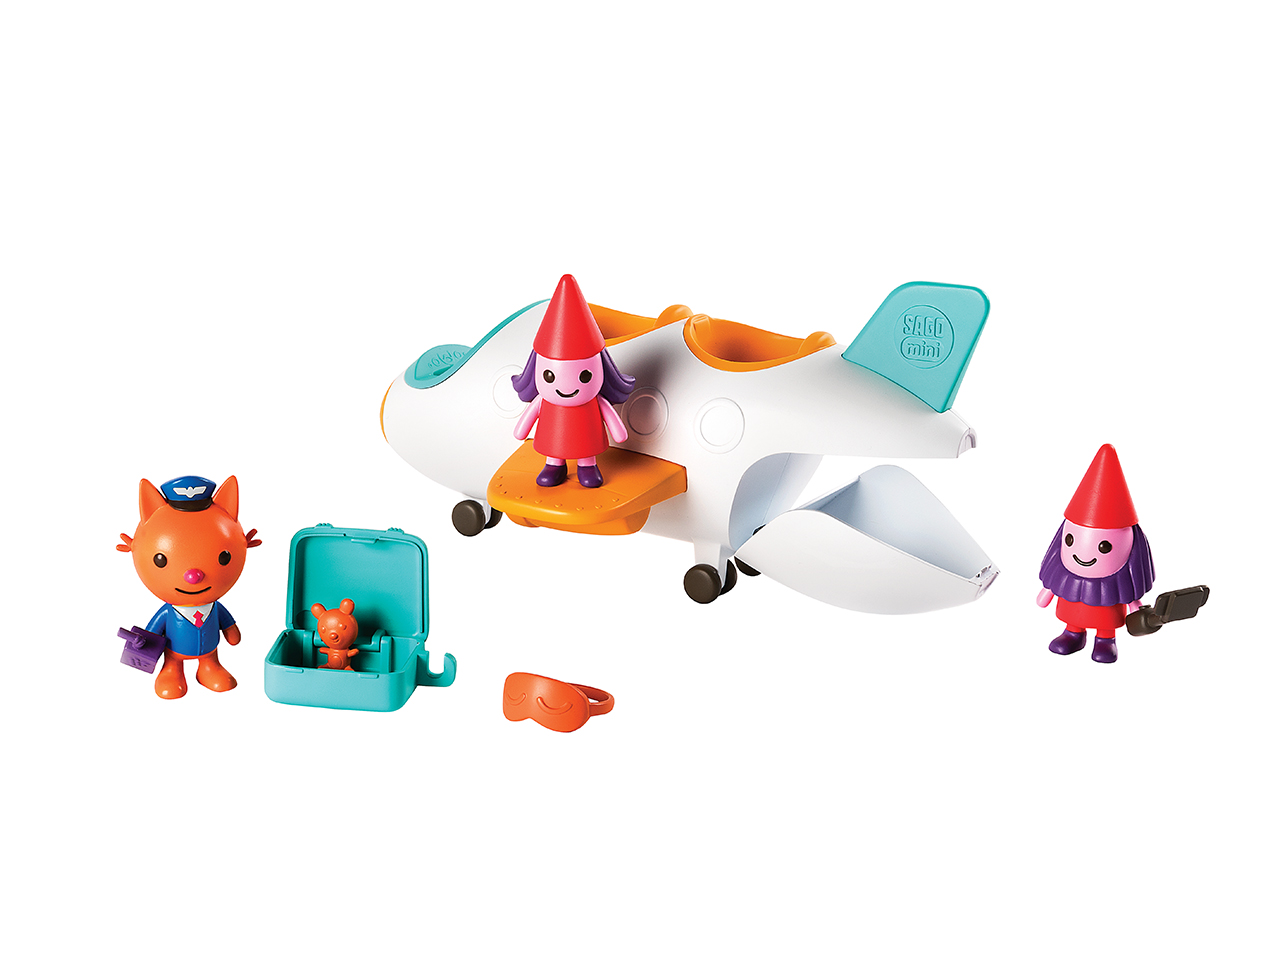 Sago Mini Jinja's Jet: A toy set featuring figurines, a jet and travel accessories